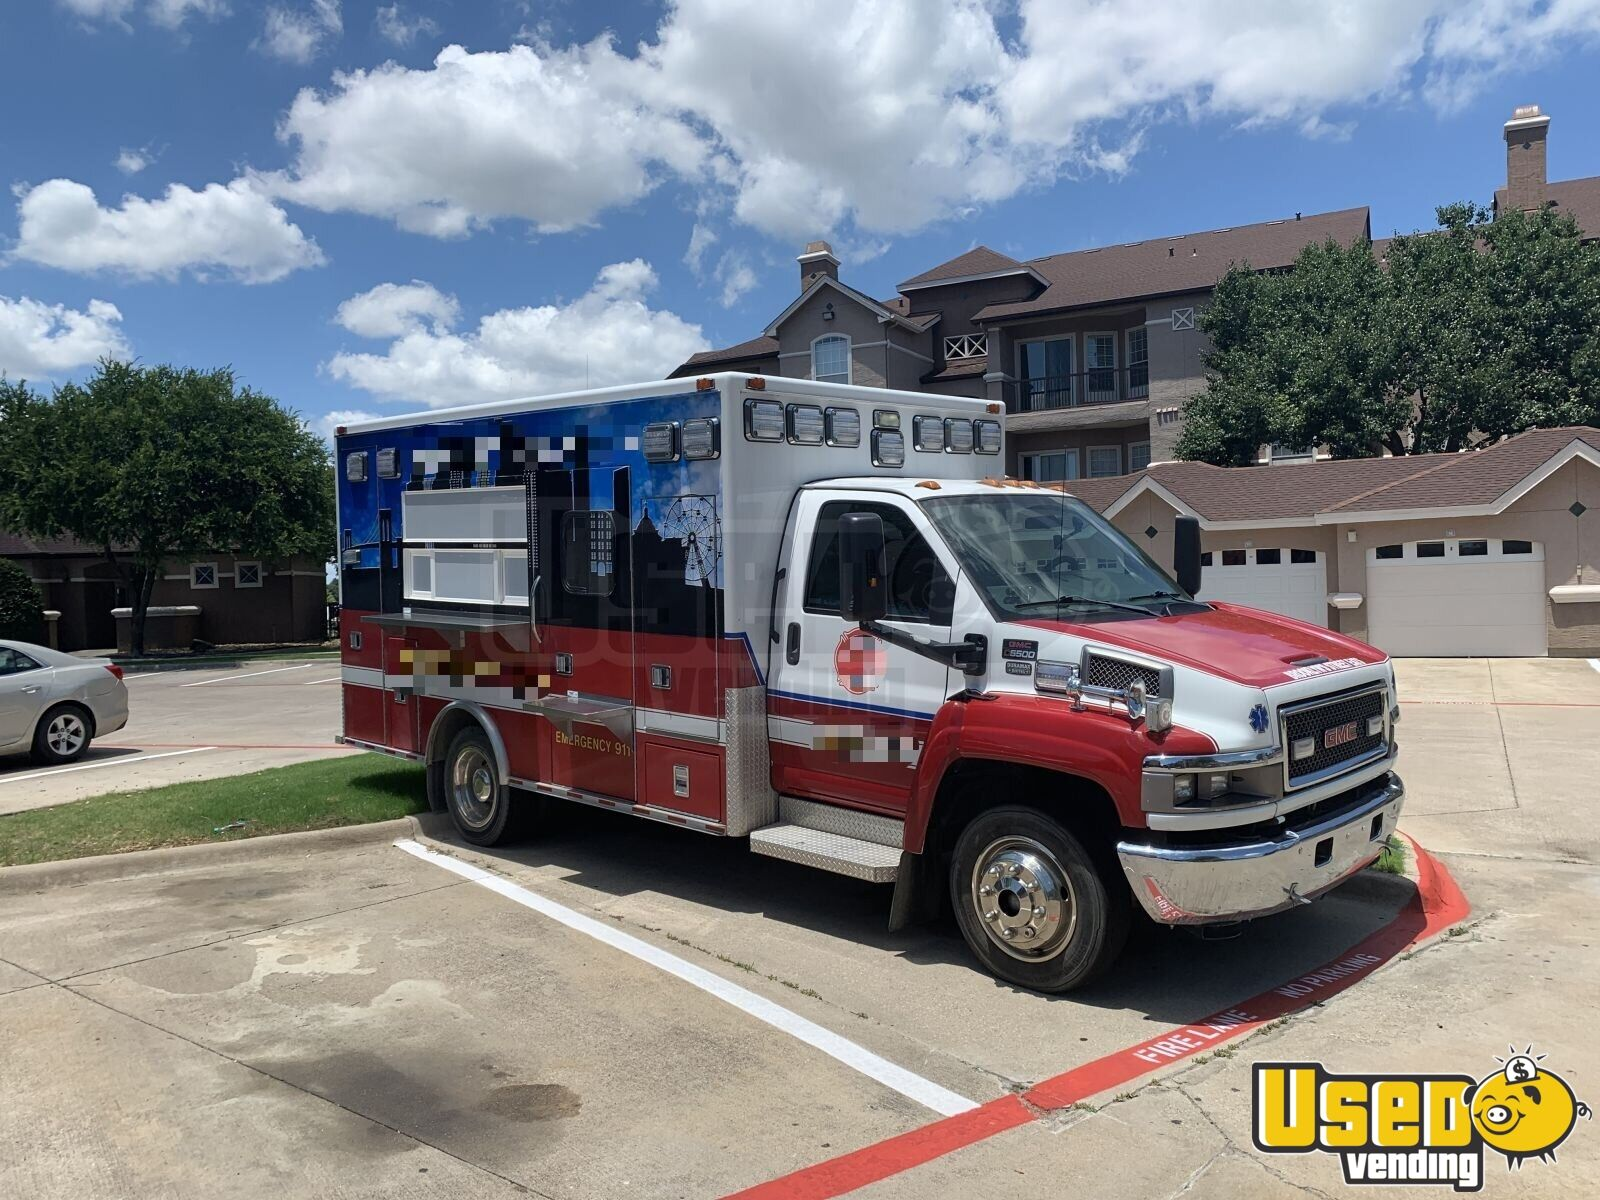 2002 Gmc All-purpose Food Truck Concession Window Texas Diesel Engine for Sale - 3